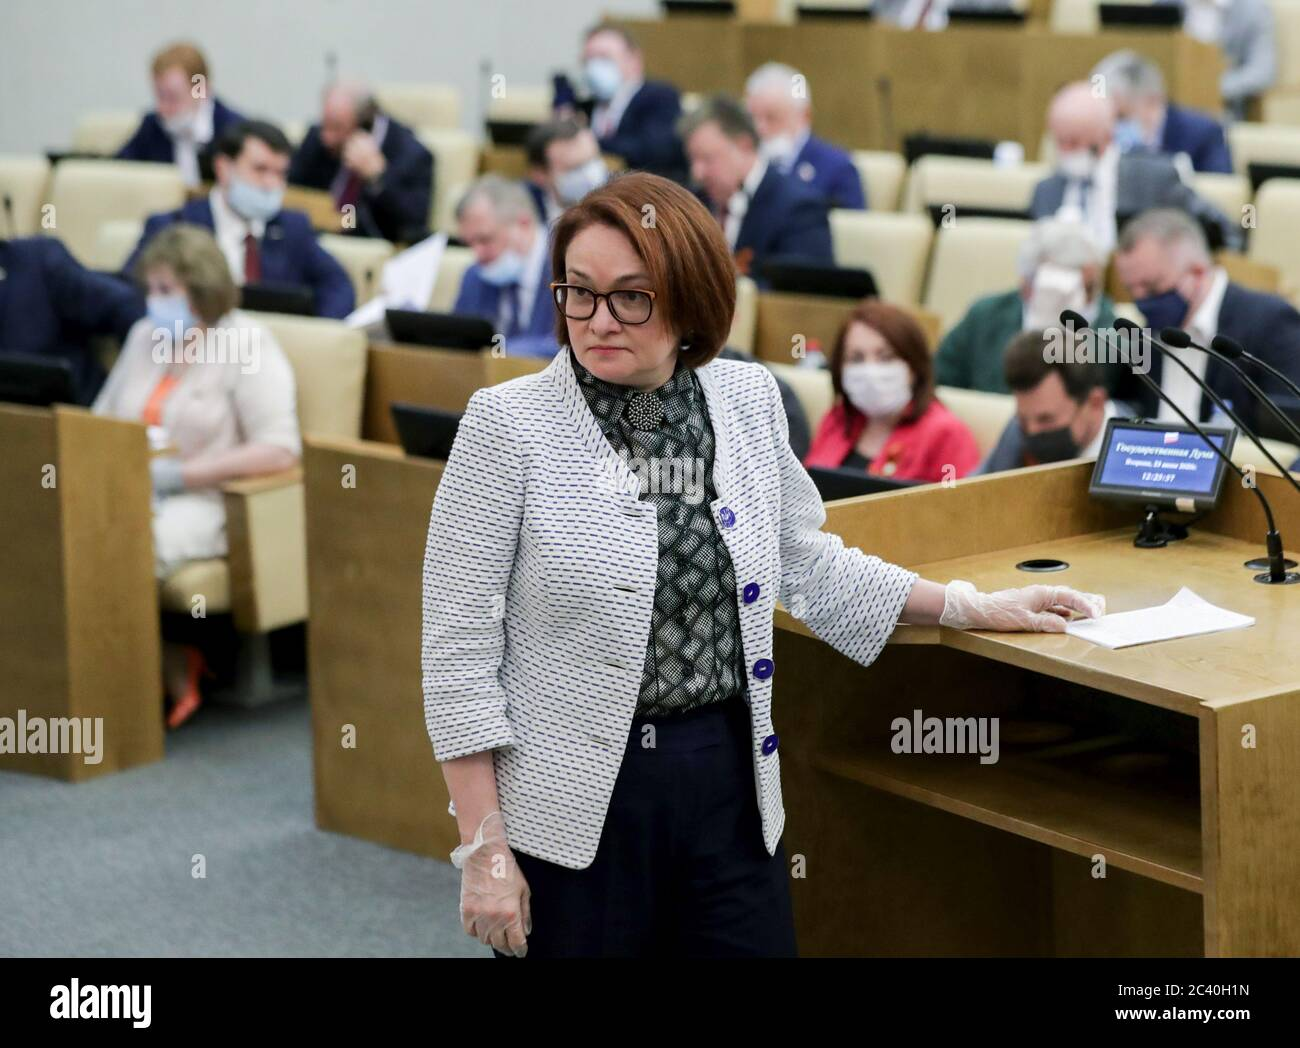 Moscow, Russia. 23rd June, 2020. Central Bank Governor Elvira Nabiullina attends a plenary meeting of the Russian State Duma. Credit: Russian State Duma Photo Service/TASS/Alamy Live News Stock Photo